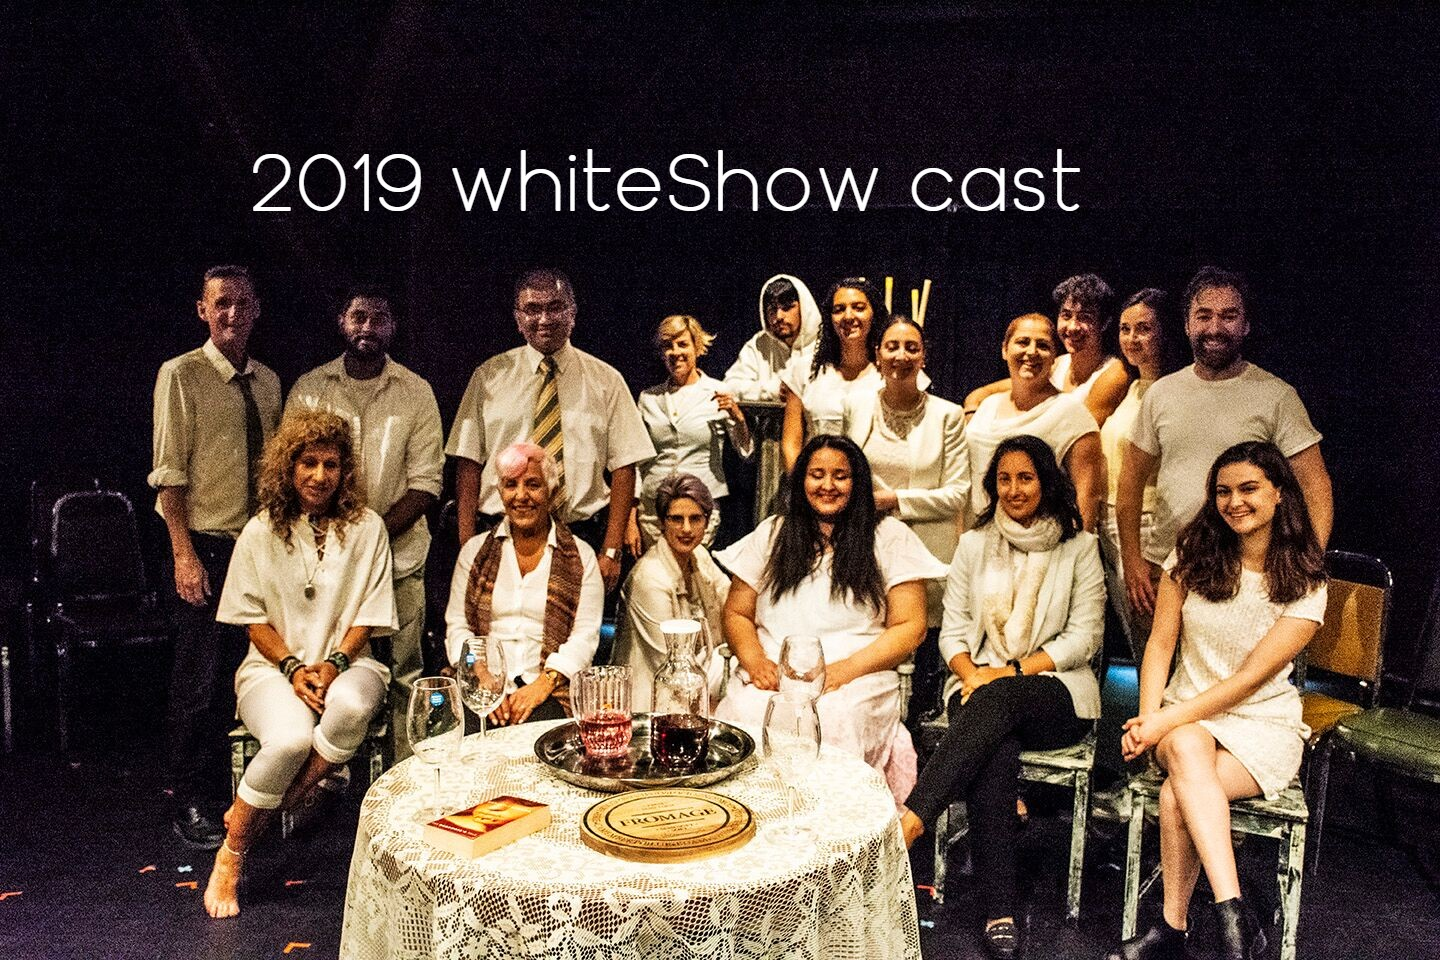 whiteshow cast -2019.jpg